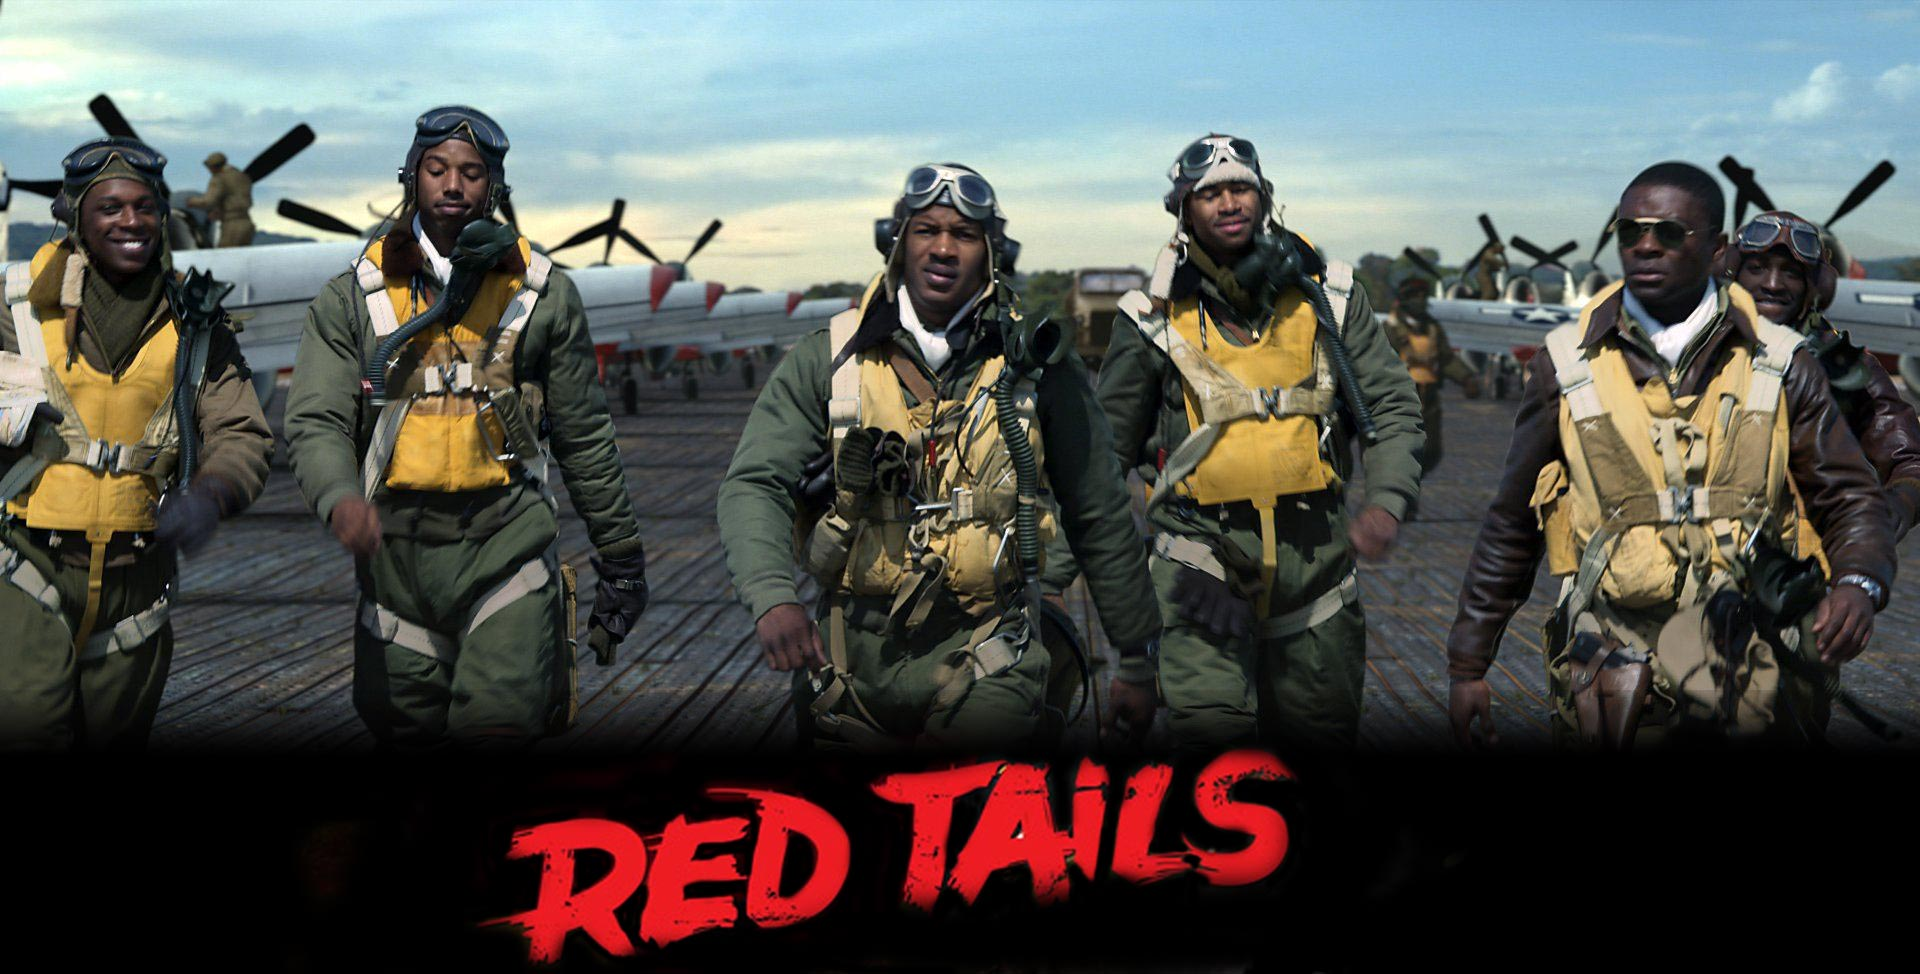 red_tails_movie